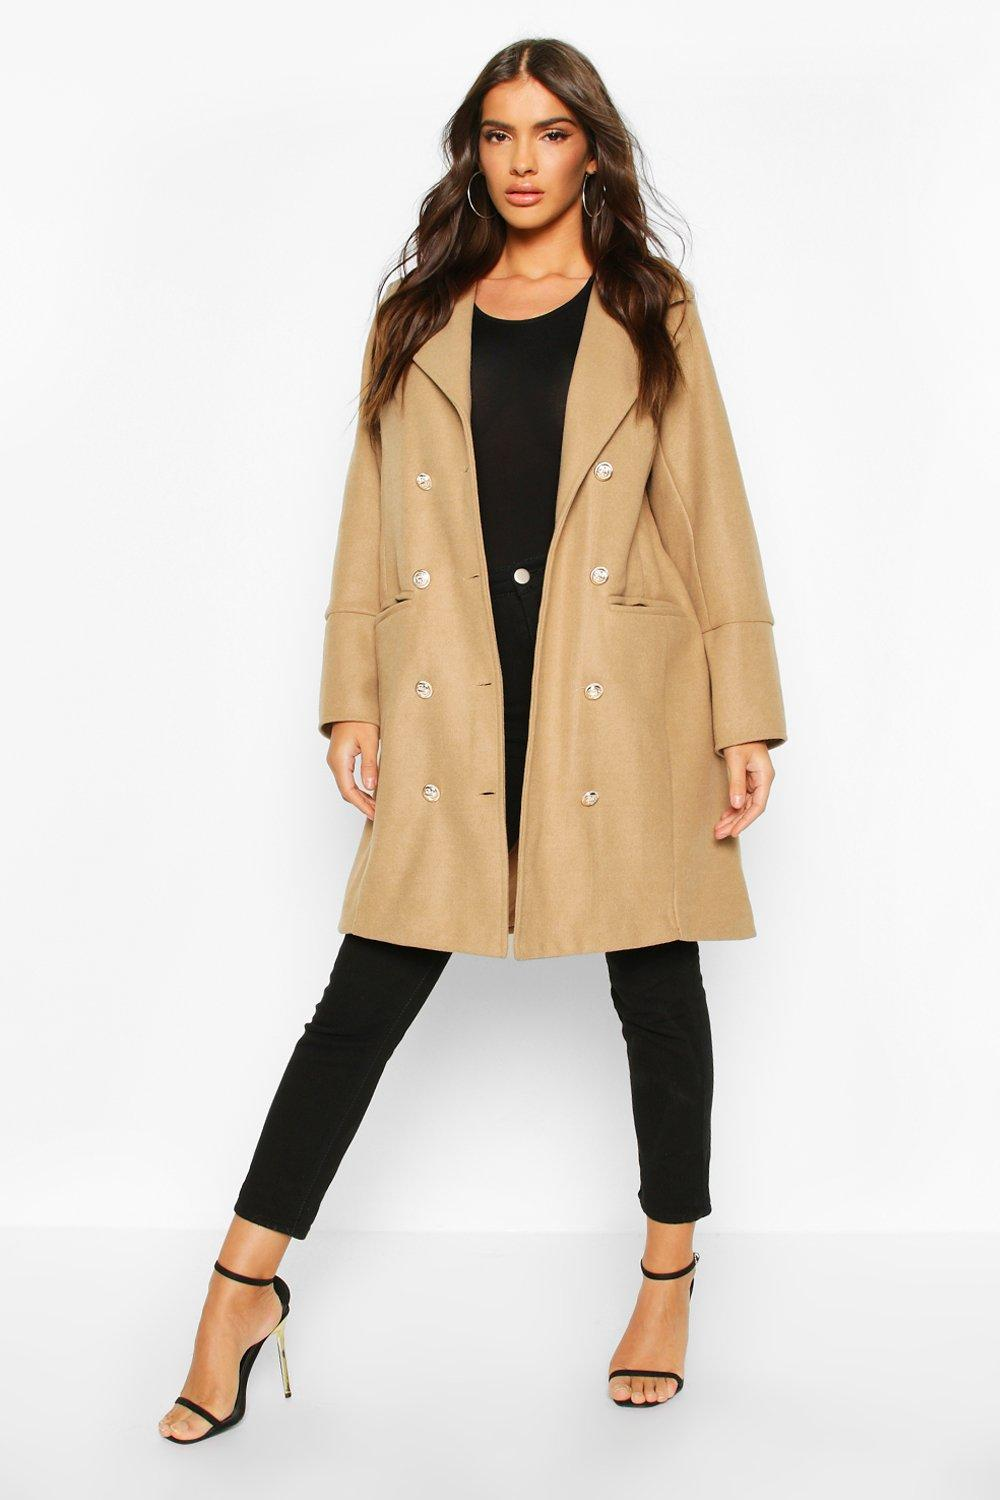 boohoo Womens Military Button Double Breasted Wool Look Coat - Beige - 14, Beige